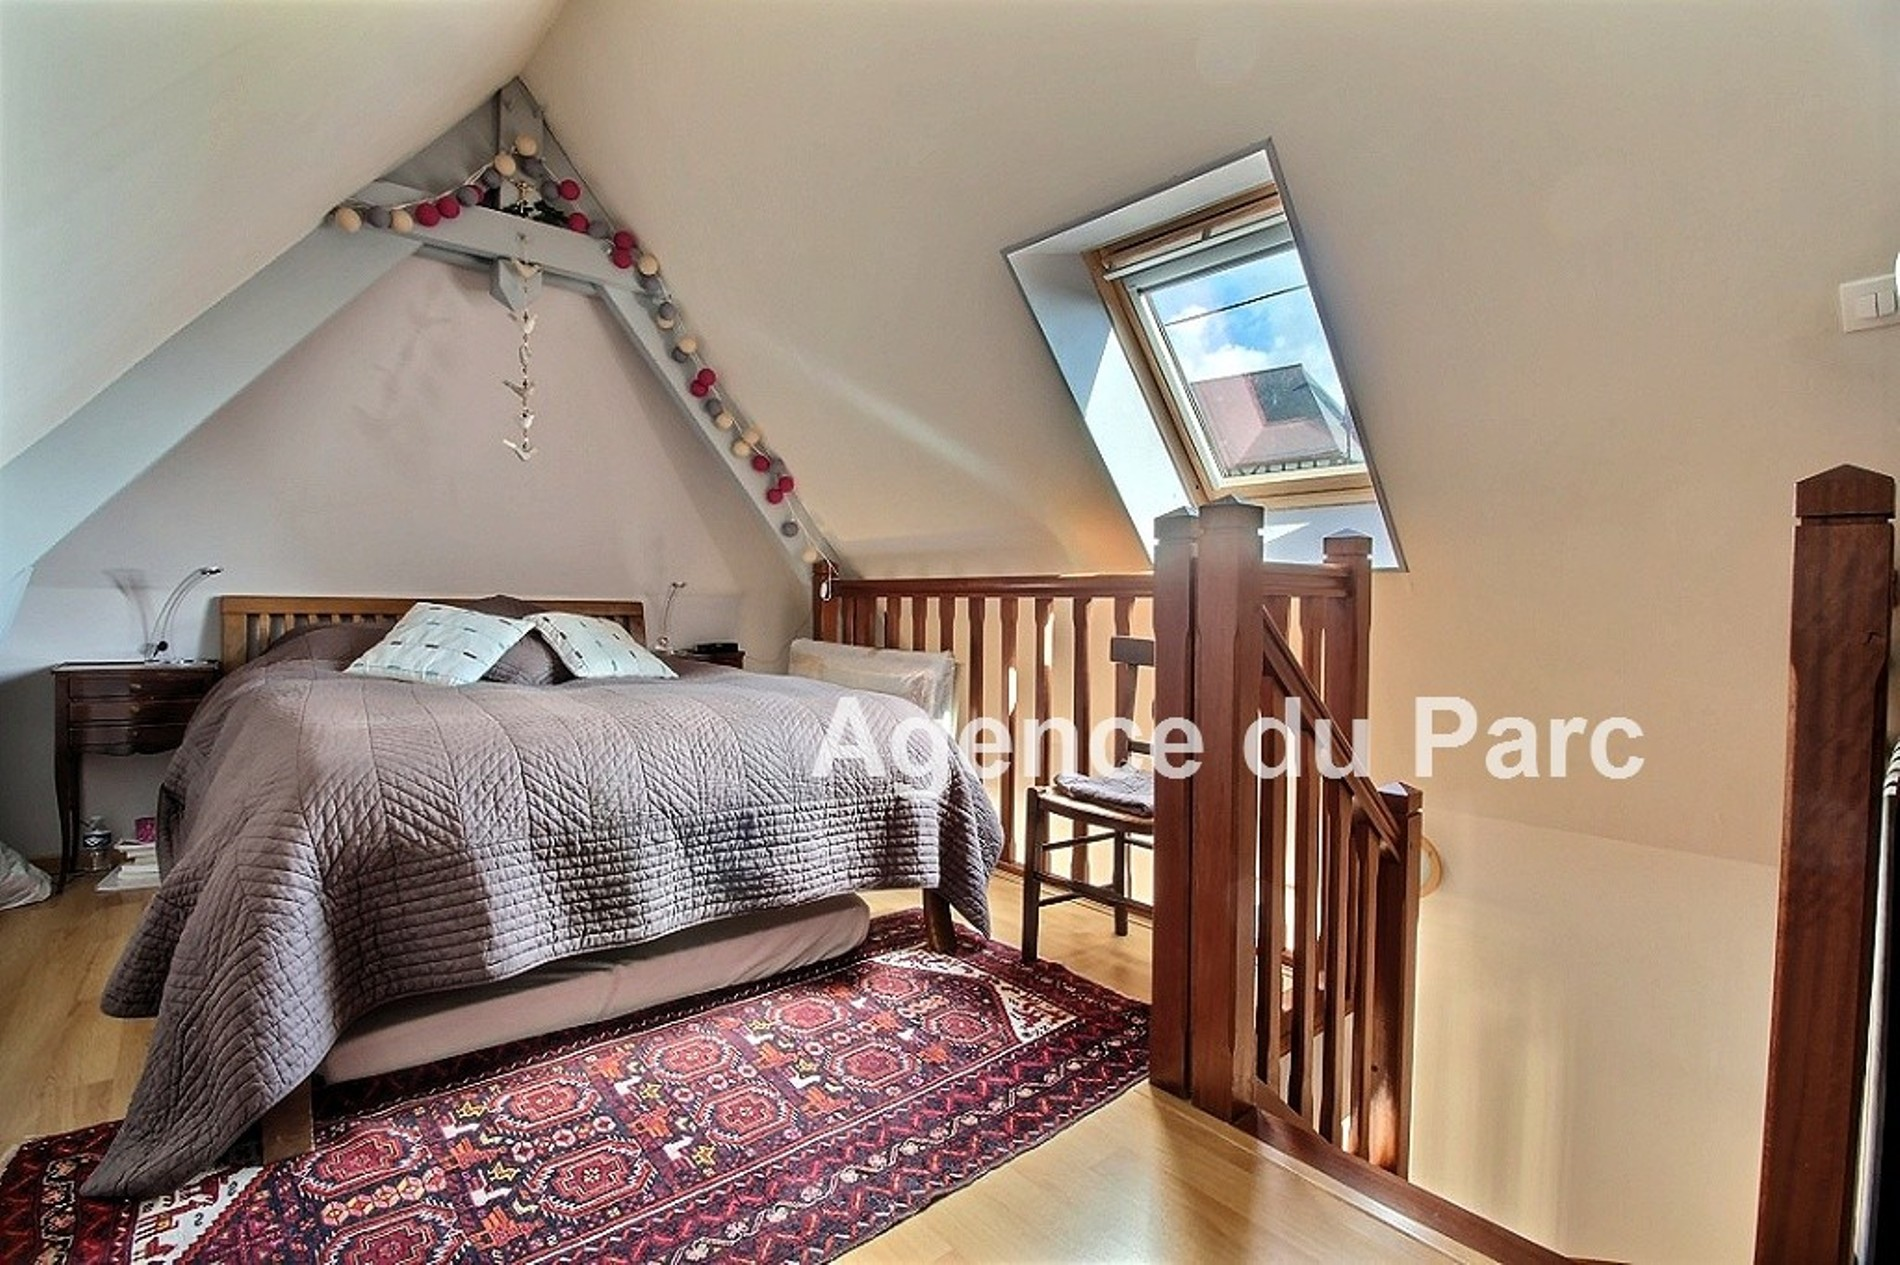 Maison de campagne proche paris parking 12 m id fu2026 for Acheter une maison de village